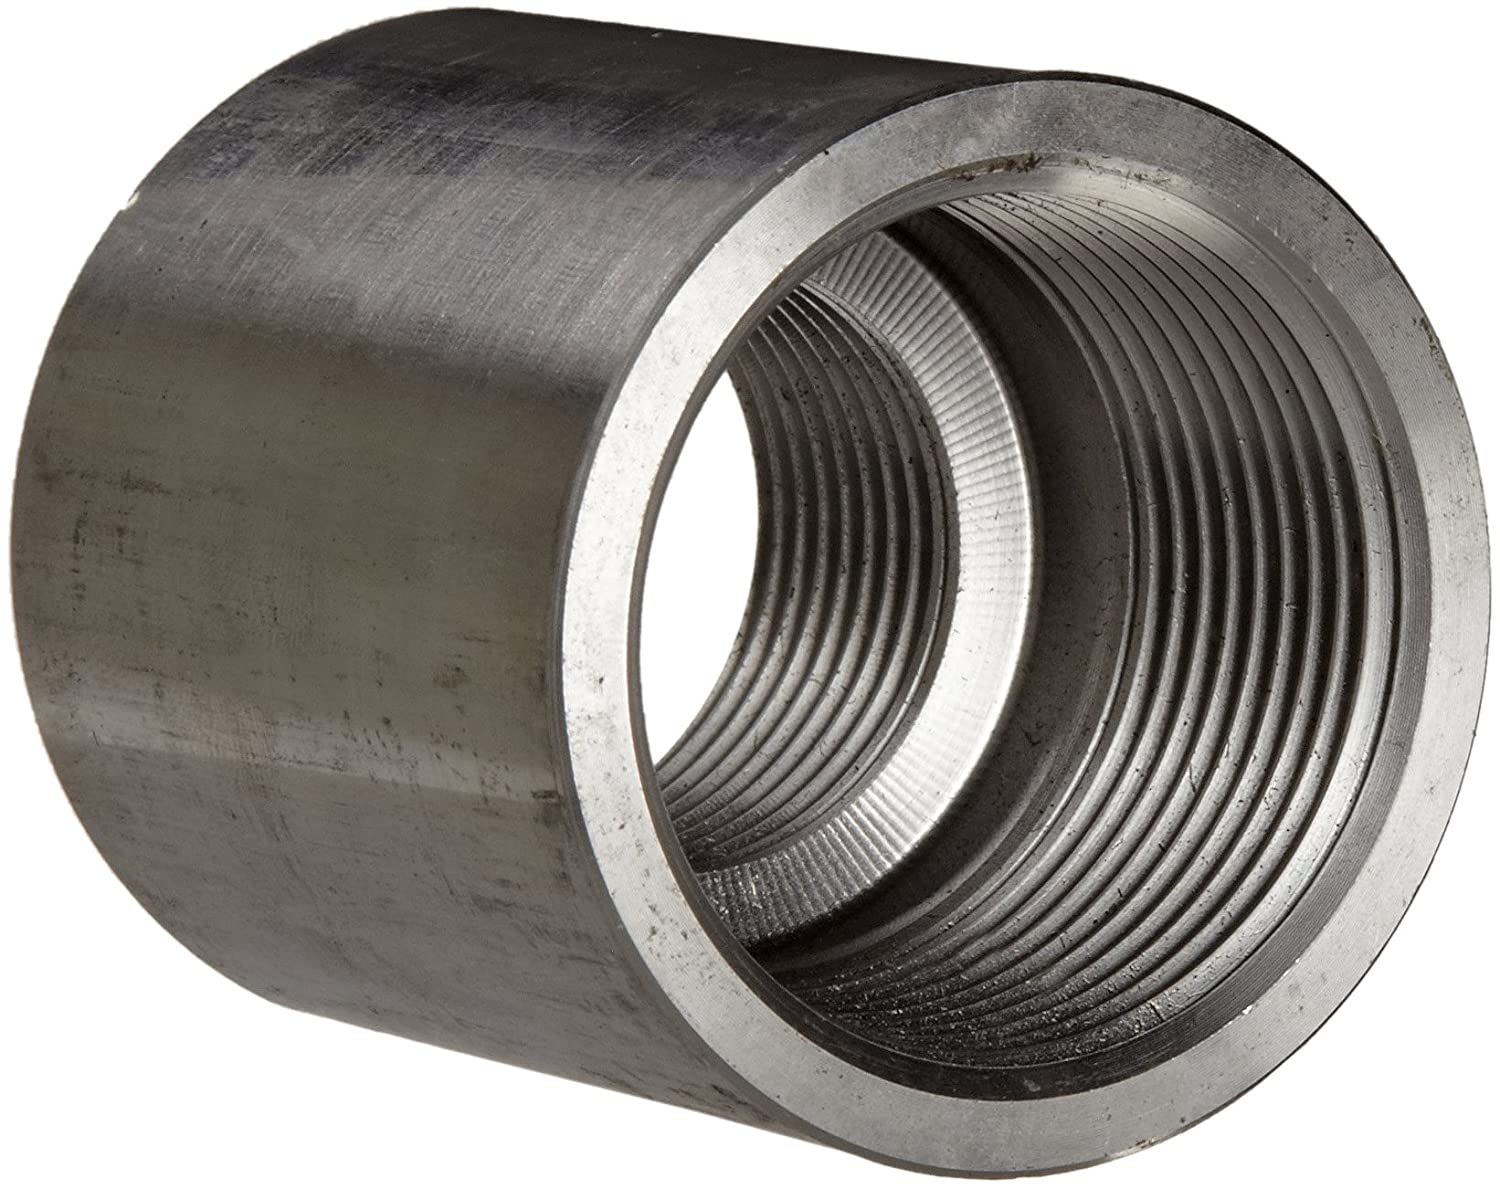 Reducing Coupling Class 1000 Stainless Steel 304 Pipe Fitting 1-1//4 X 3//8 NPT Female 1-1//4 X 3//8 NPT Female Merit Brass